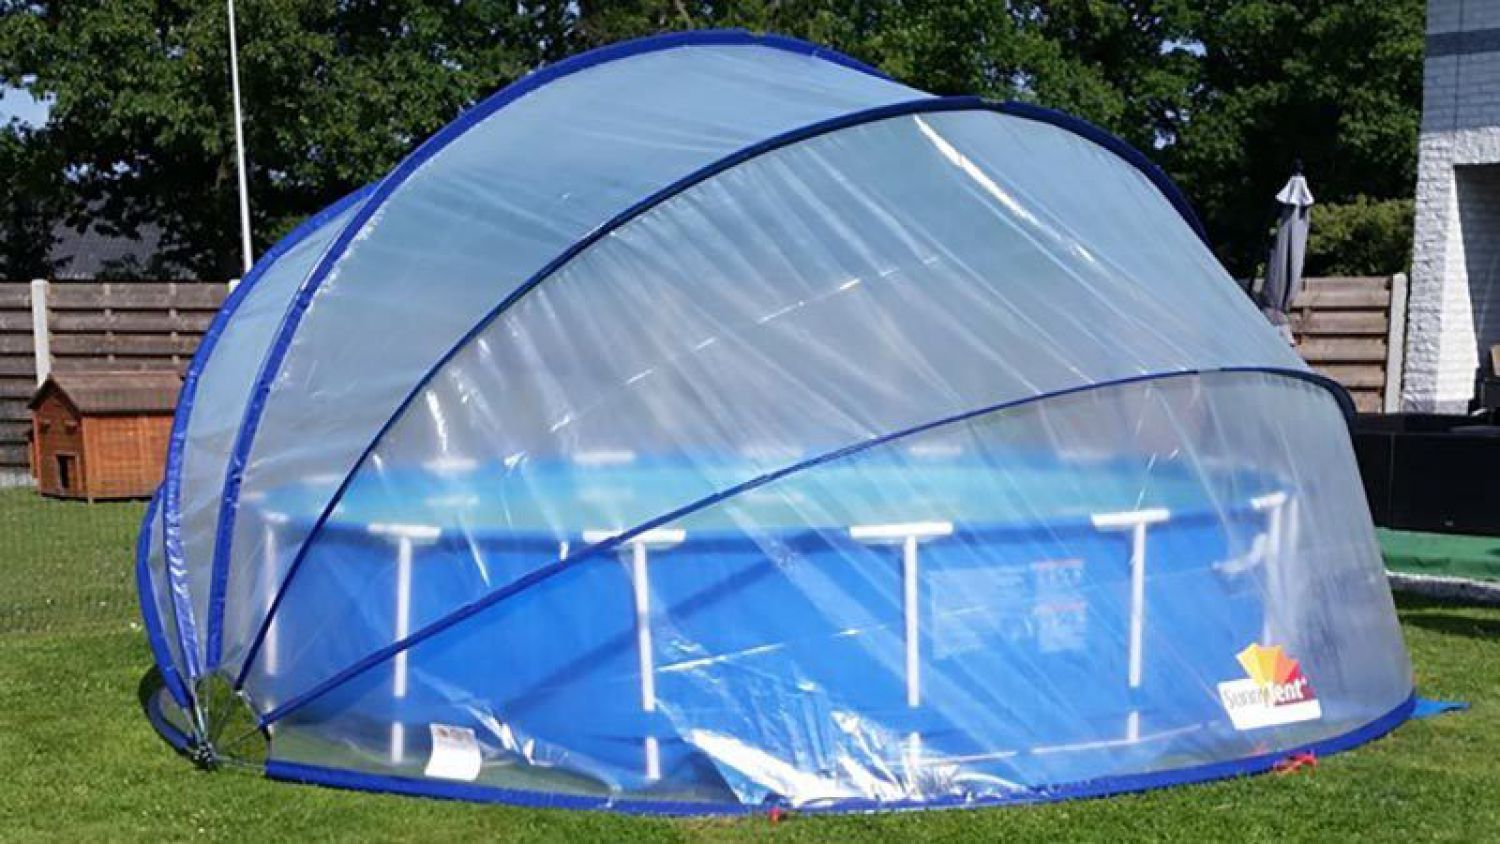 sunnytent poolabdeckung 4 40 m poolplane sunny tent pool berdachung neu ebay. Black Bedroom Furniture Sets. Home Design Ideas